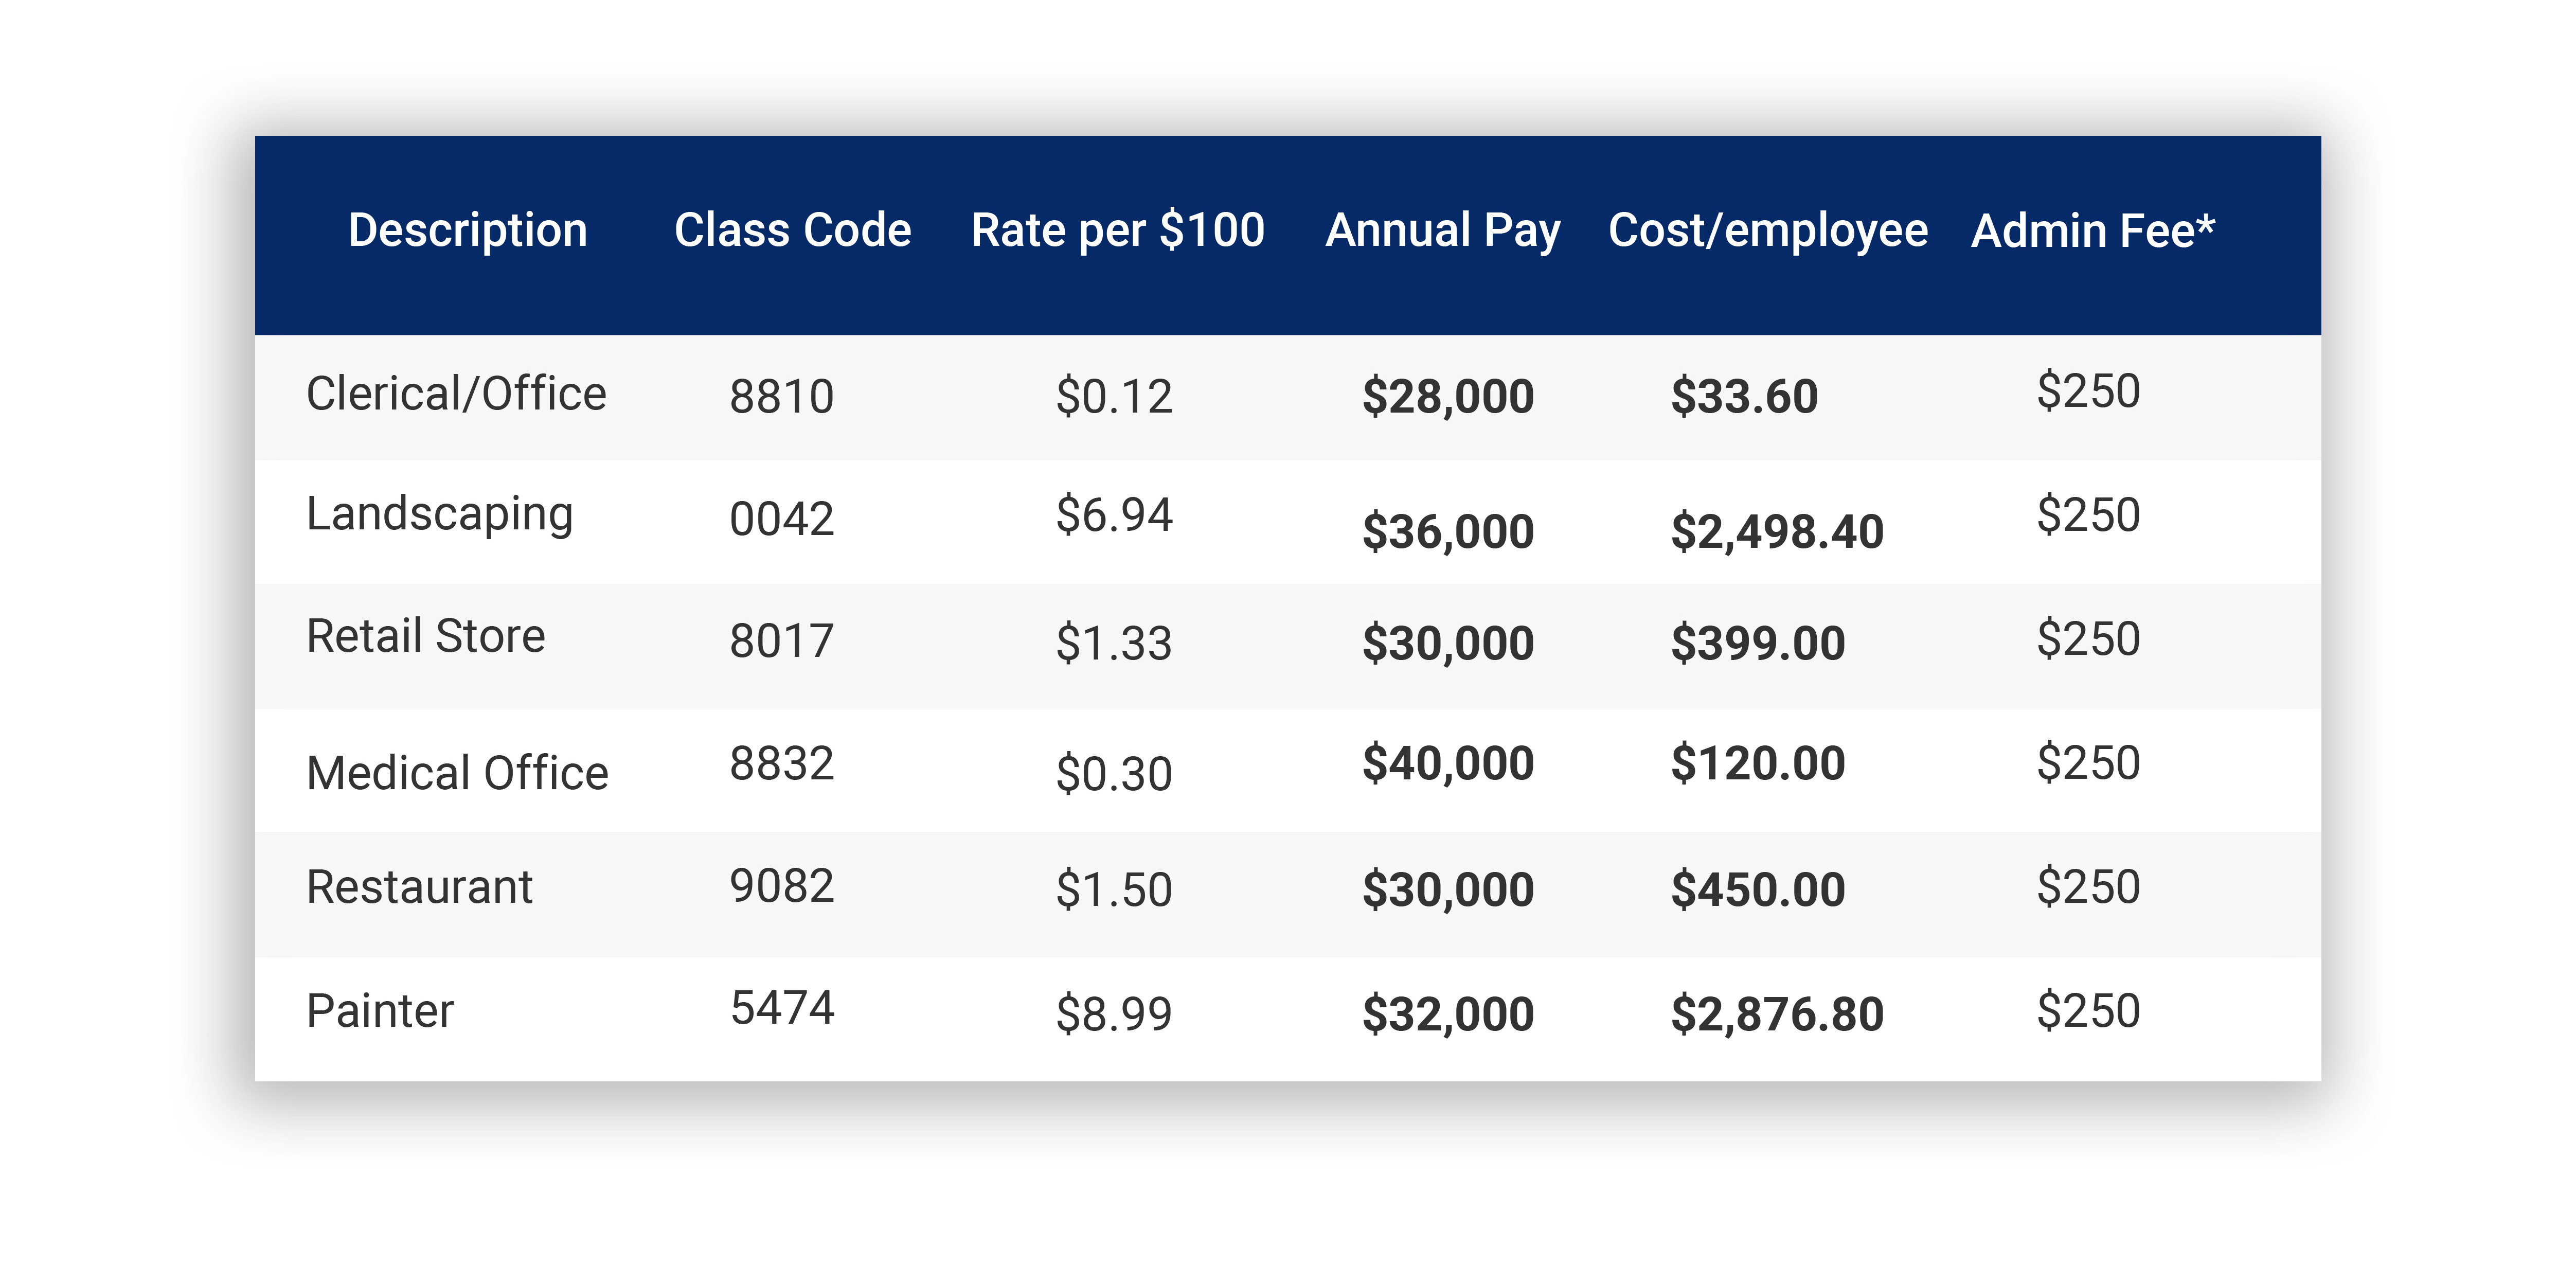 Workers' compensation insurance sample table from the National Council on Compensation Insurance.